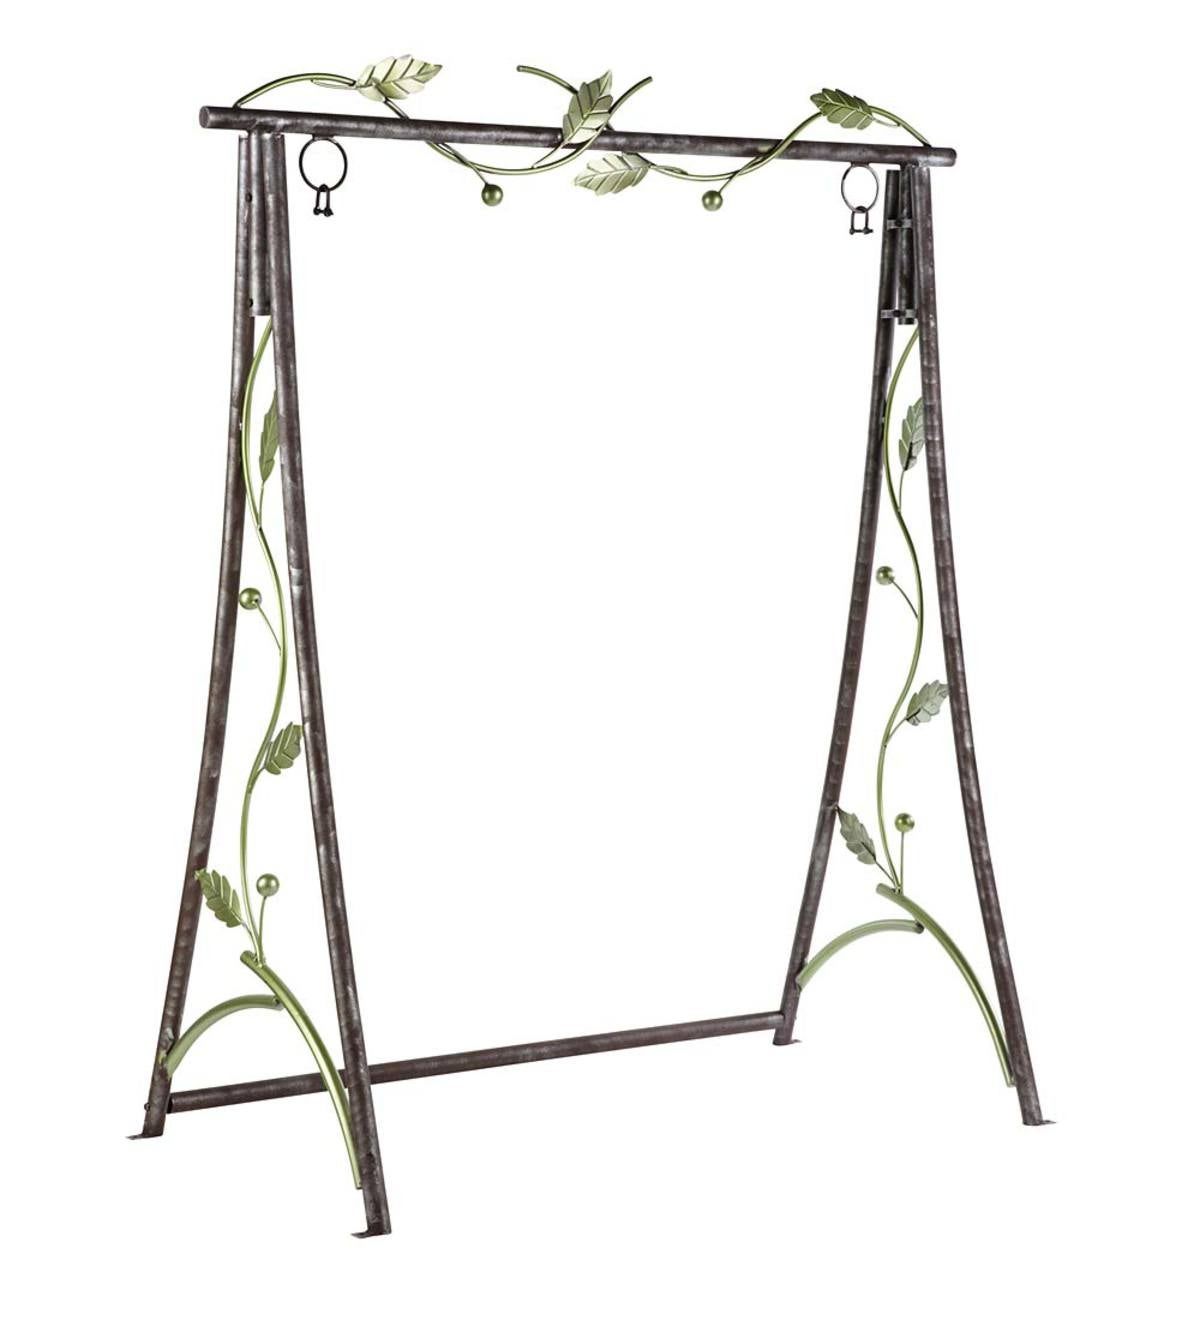 Metal Leaf Swing Stand